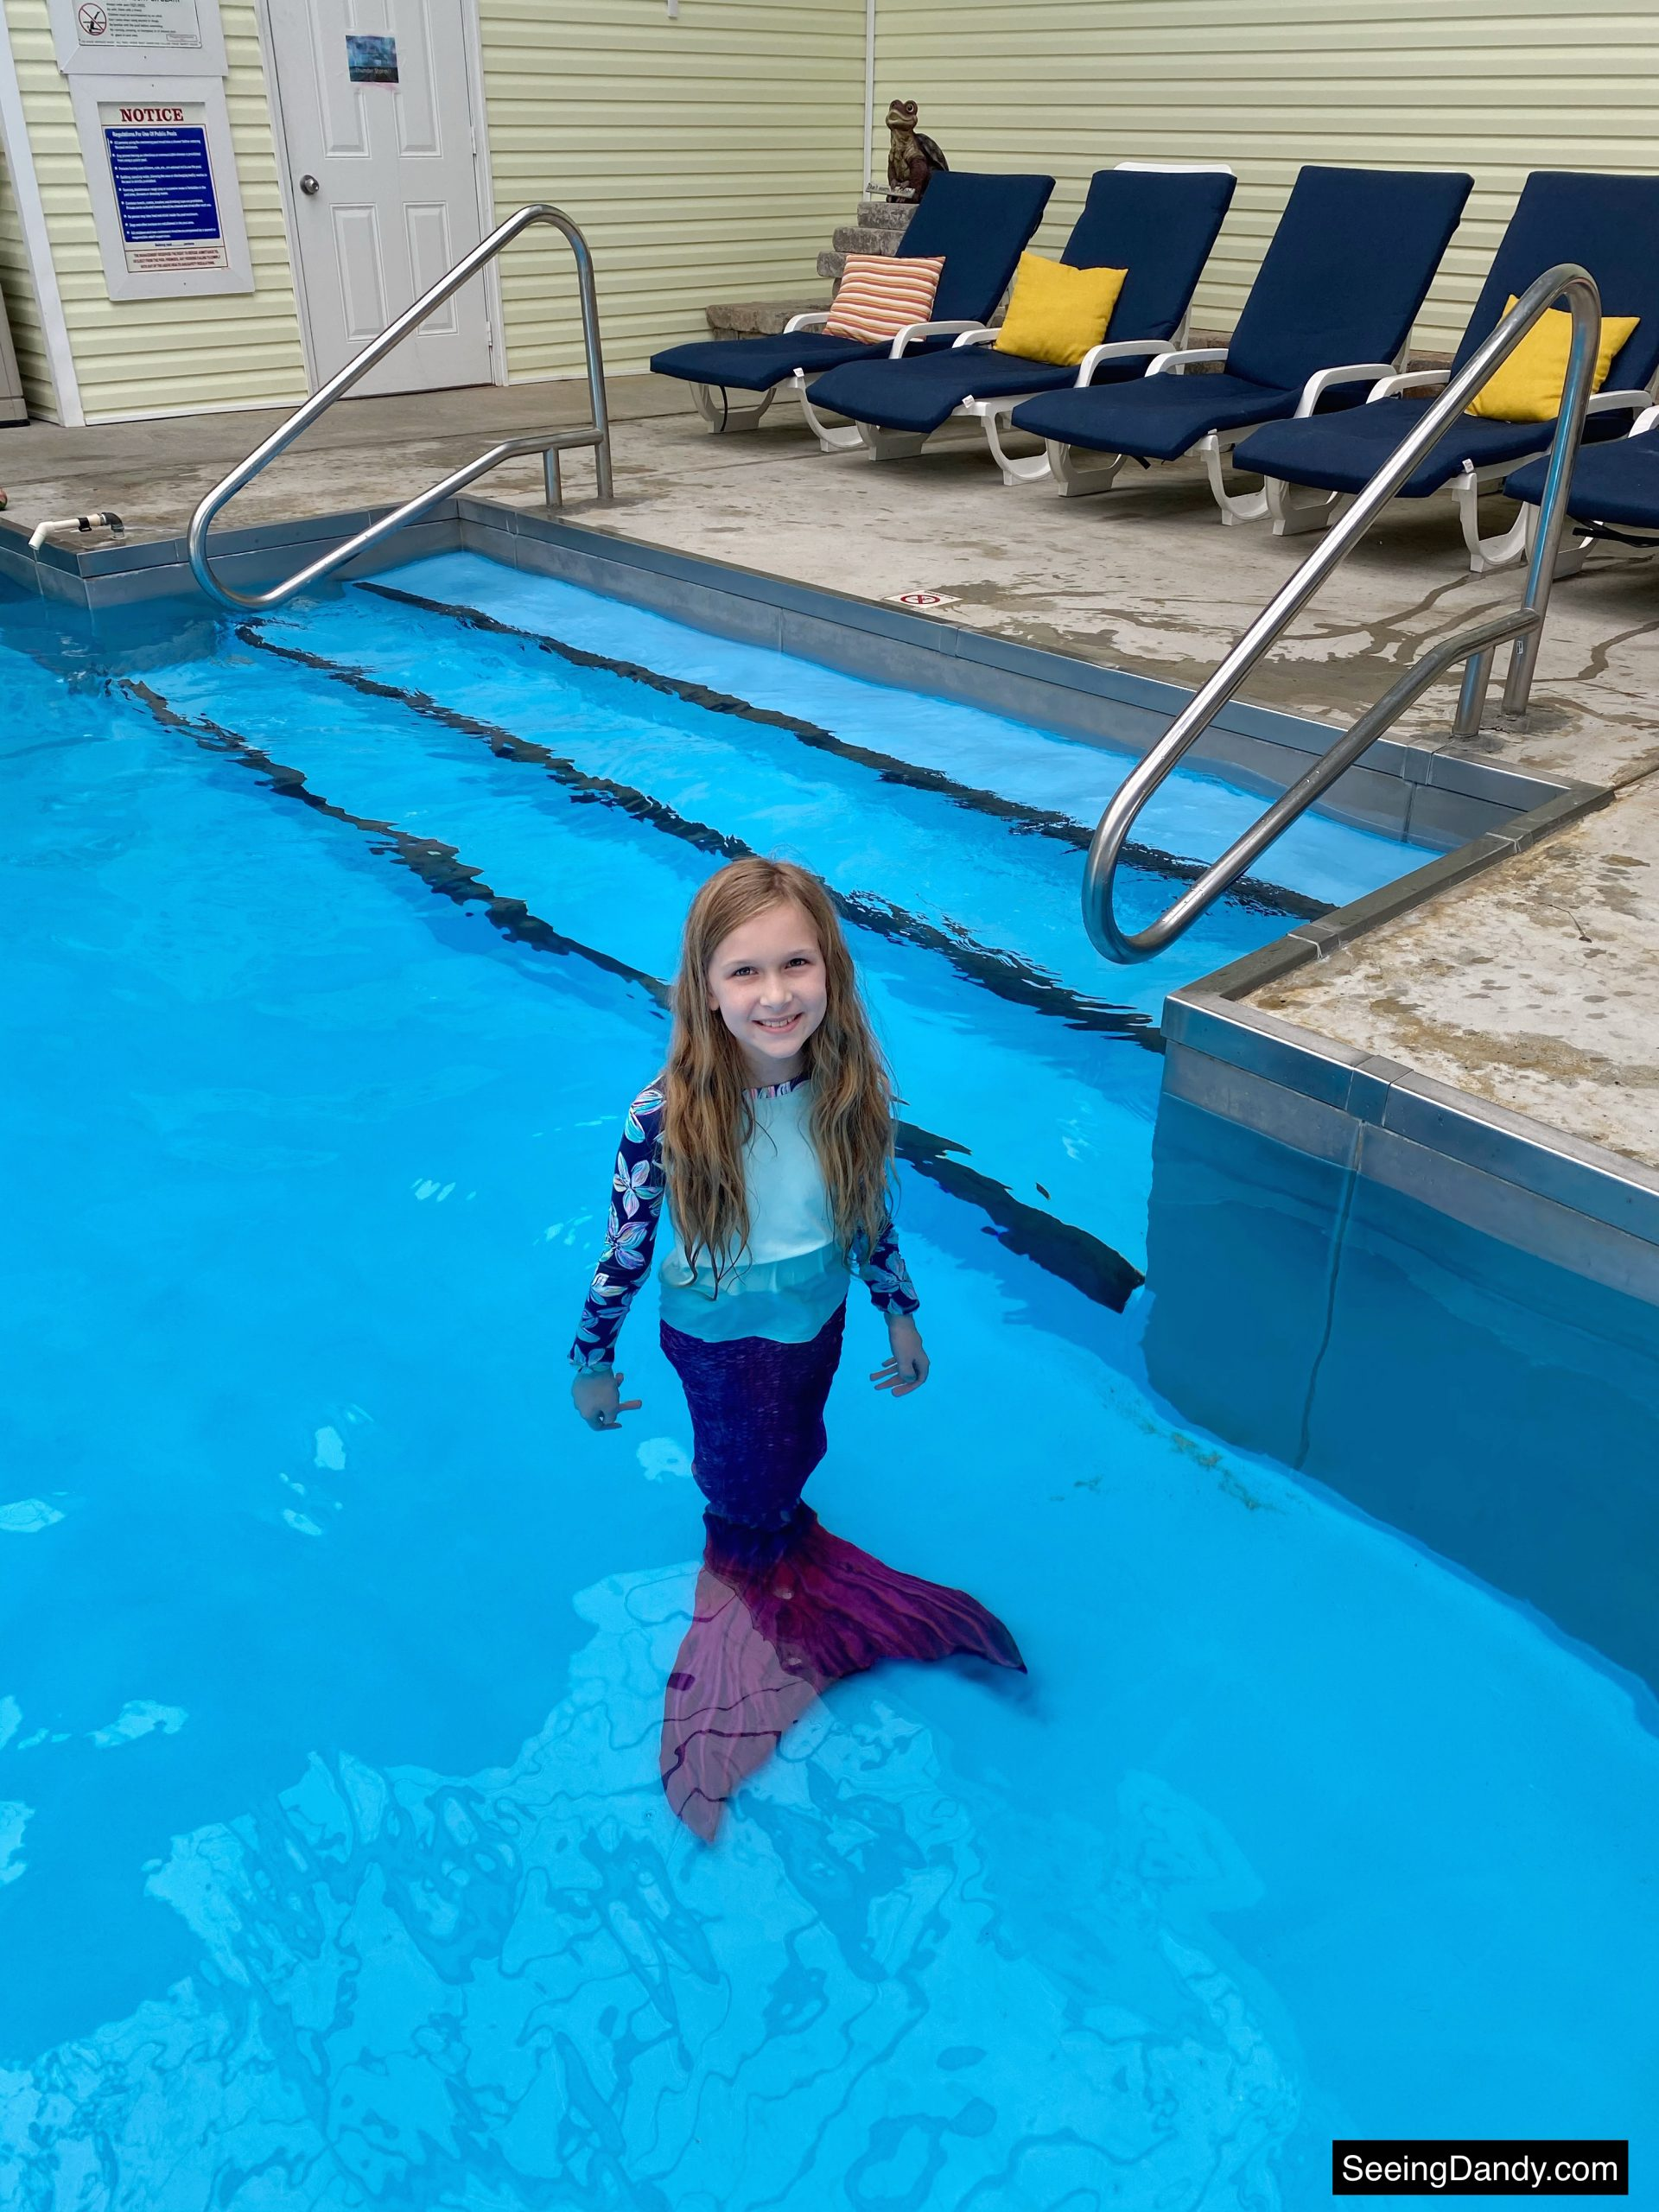 blue pool chairs, sun tails, mermaid tail, suntail, suntails, mermaid fin, monofins, sun tail mermaid, green turtle bay indoor pool, grand rivers kentucky pool, grand rivers resort, family travel